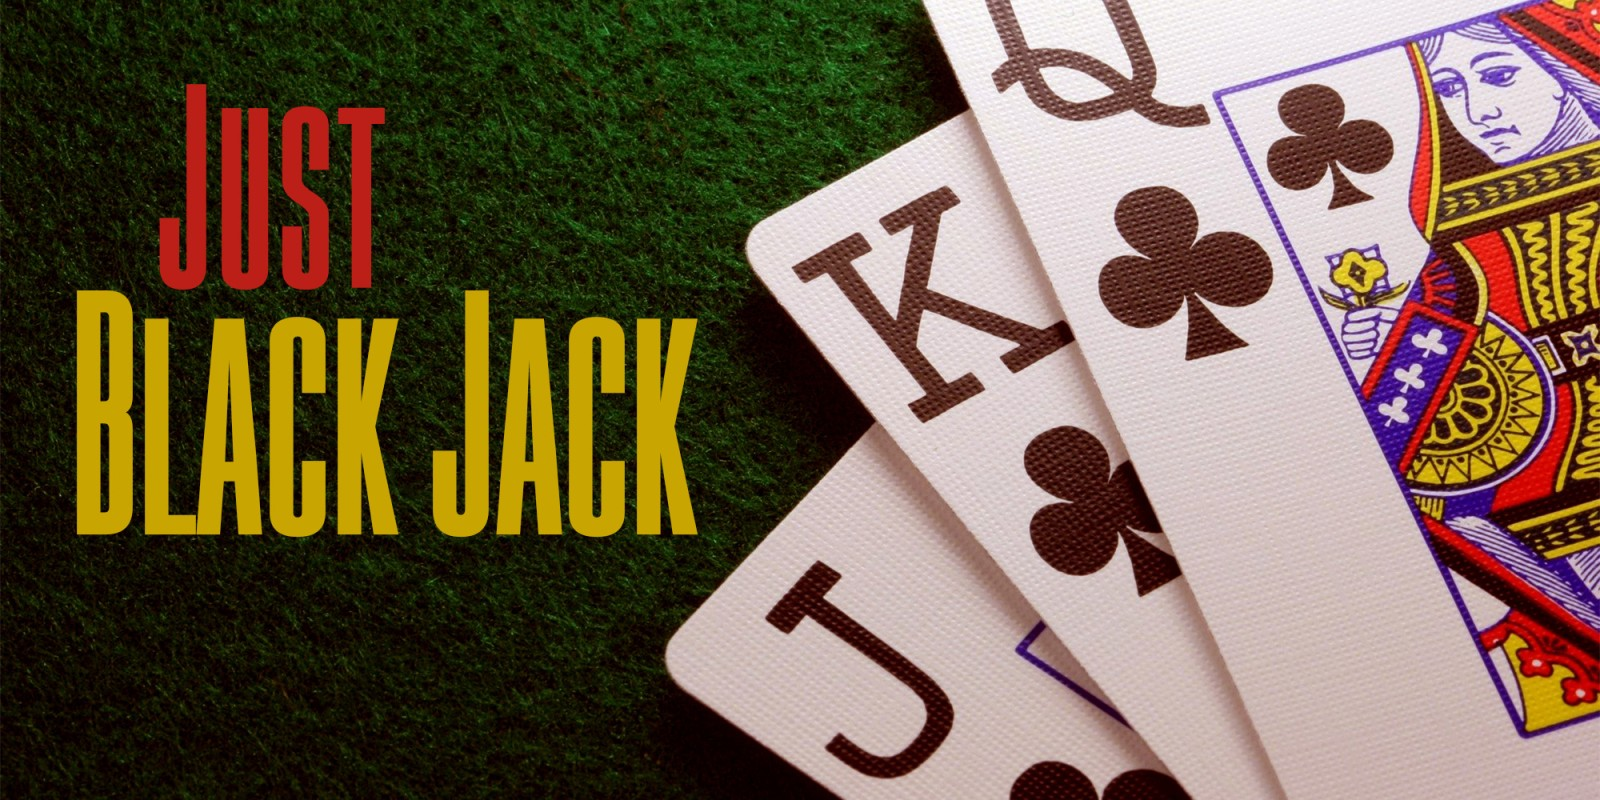 Just Black Jack | Nintendo Switch download software | Games